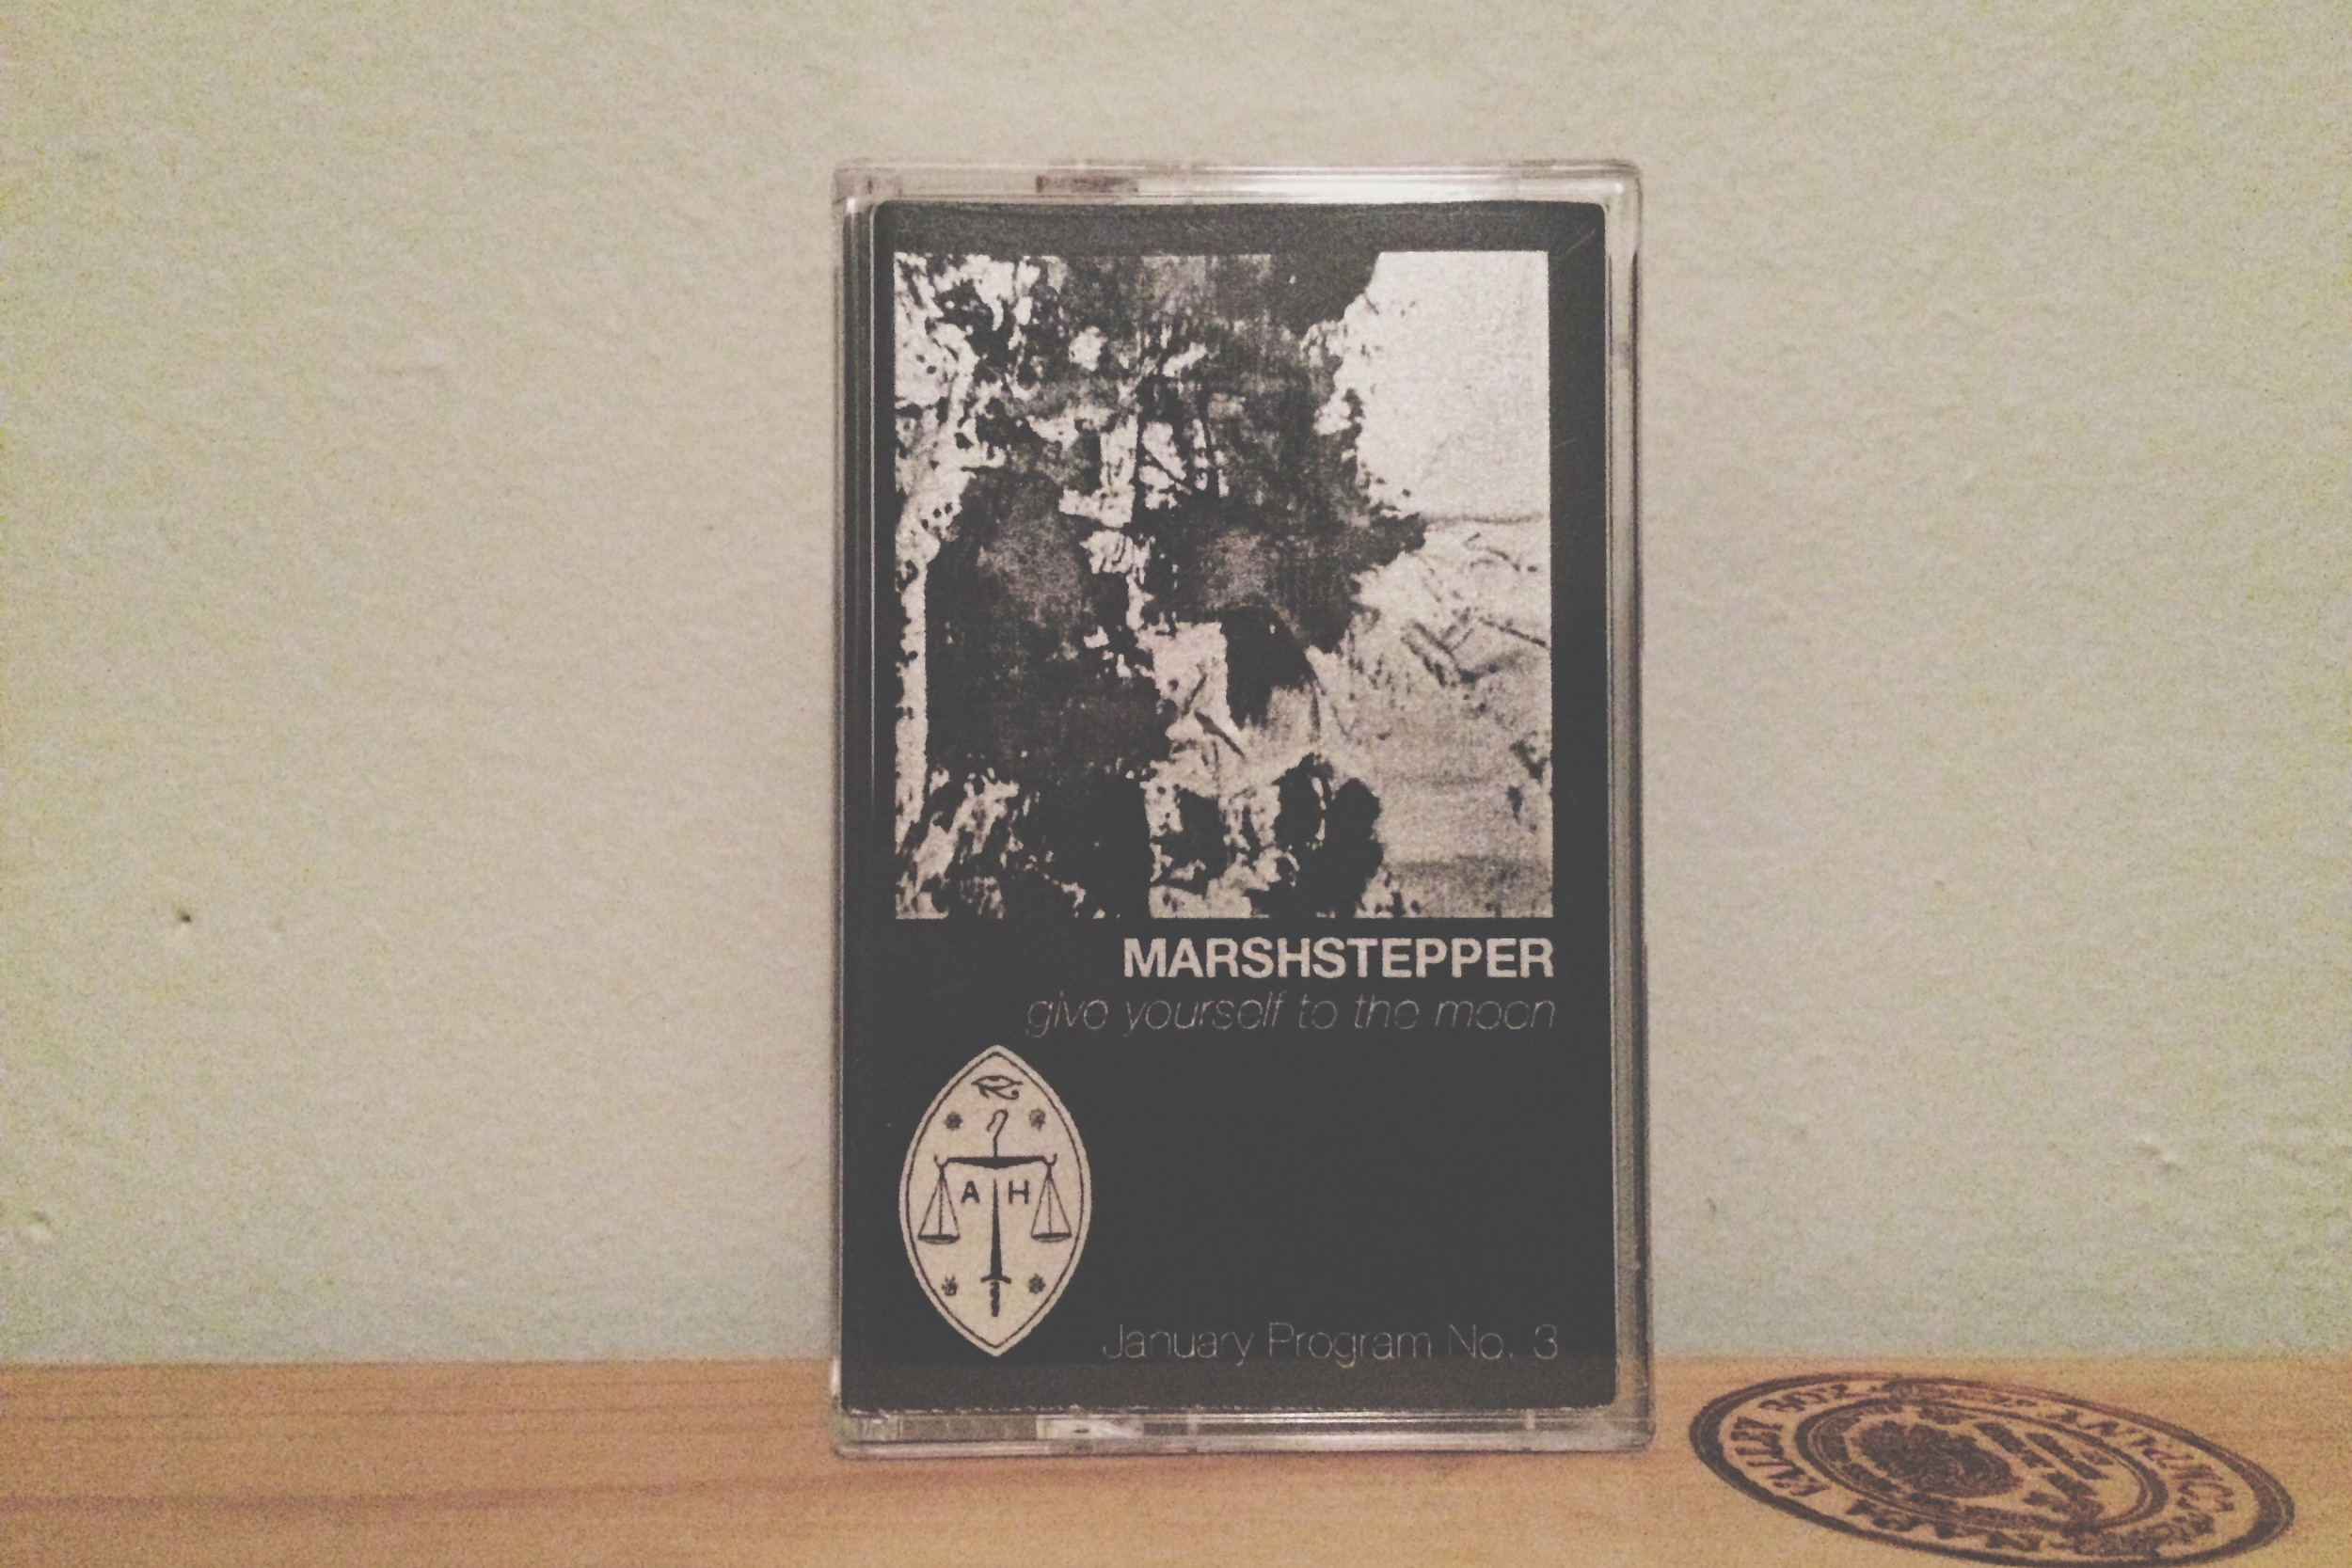 3 04. Marshstepper - Give Yourself To The Moon.jpg